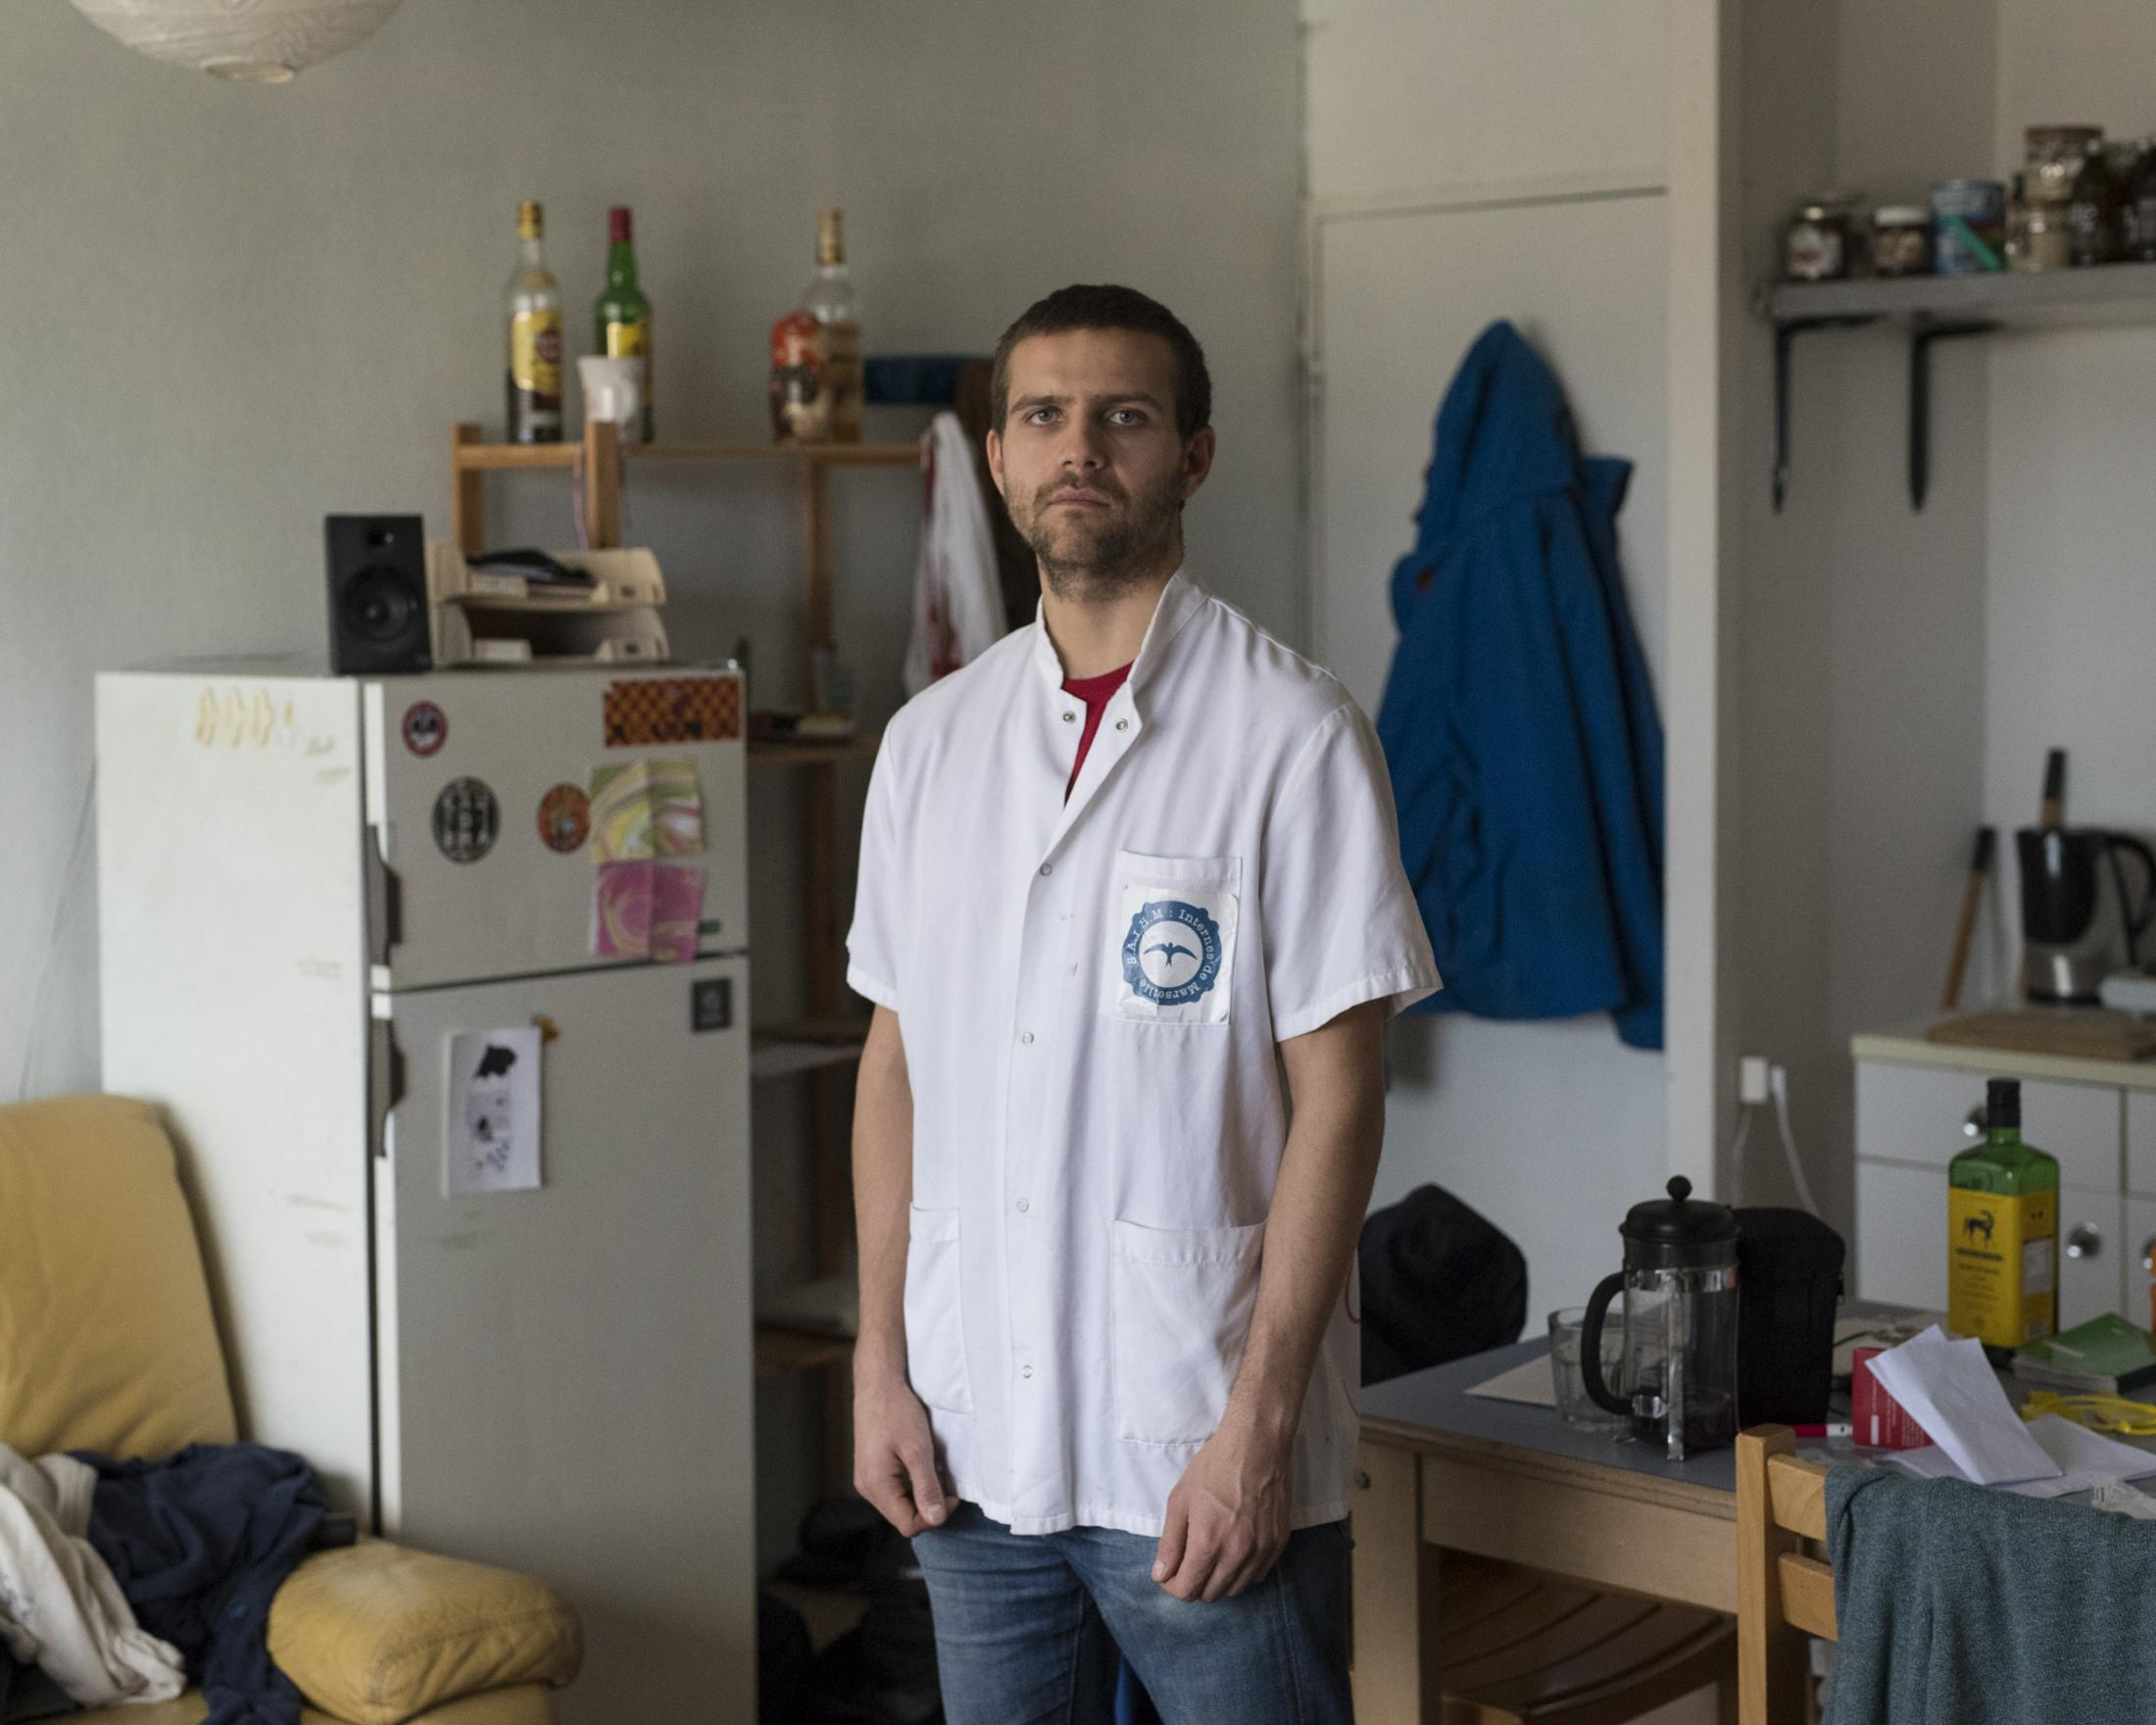 Xavier Charléty, a general medicine intern on strike poses for a portrait in his room at the intern residency in Marseille's La Timone hospital, Dec. 18, 2019.